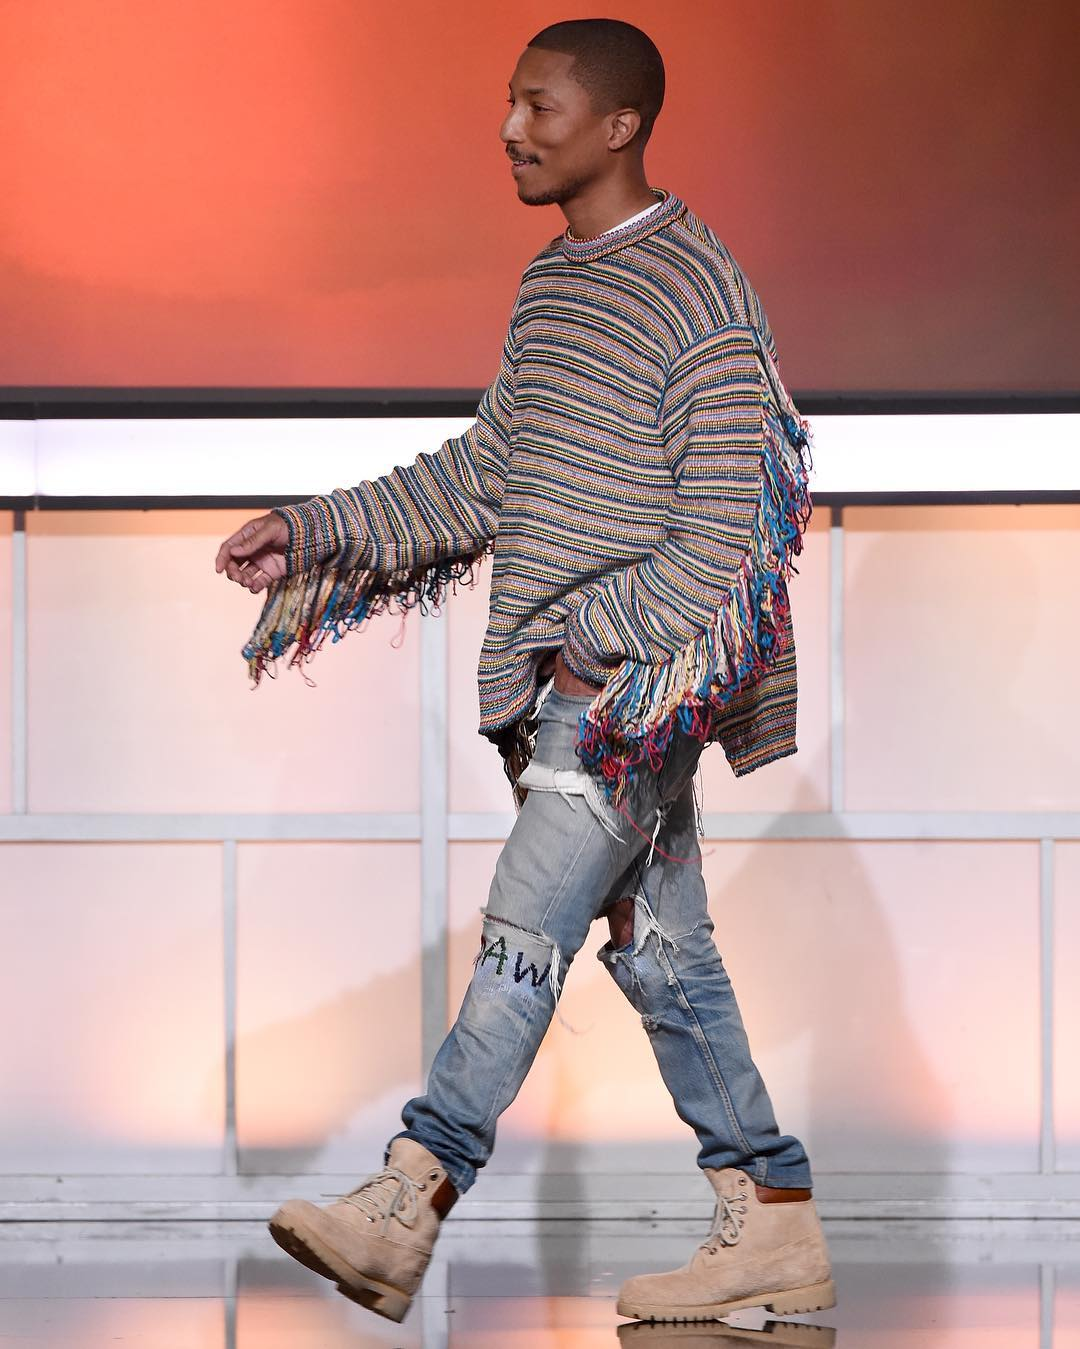 SPOTTED: Pharrell Williams In Stella McCartney Sweater And Timberland Boots